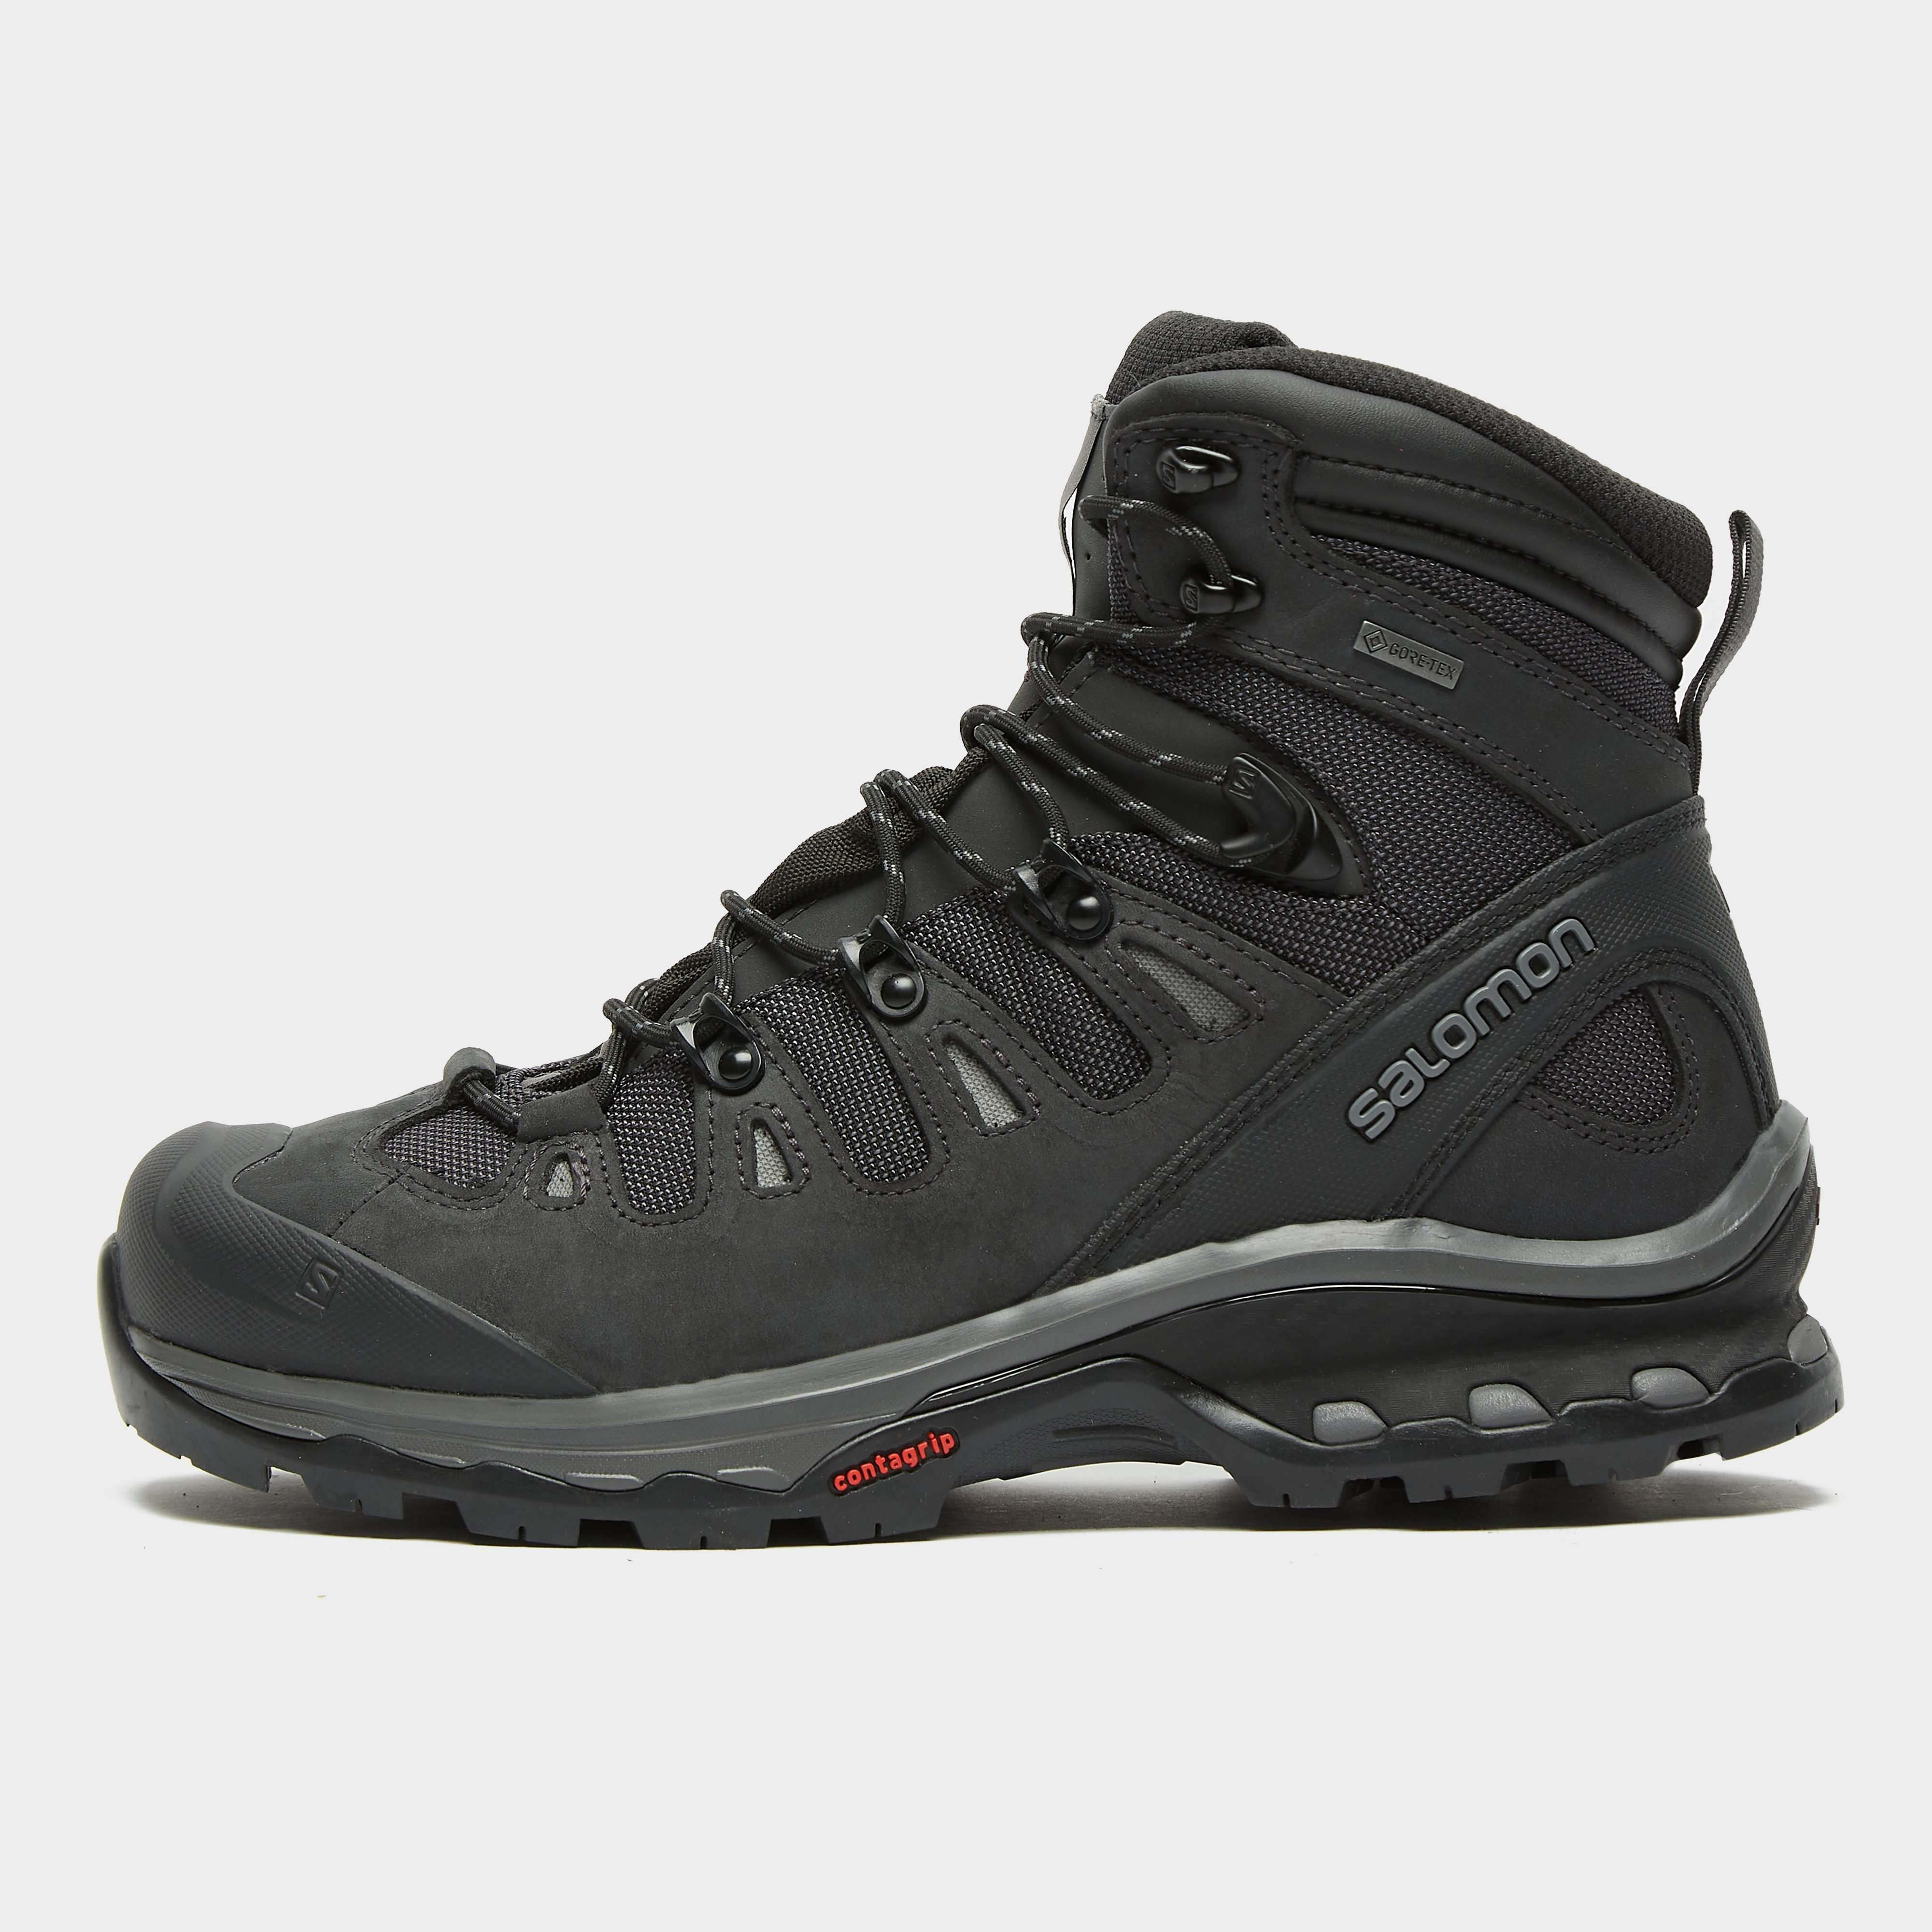 SALOMON Men's Quest 4D 3 GTX